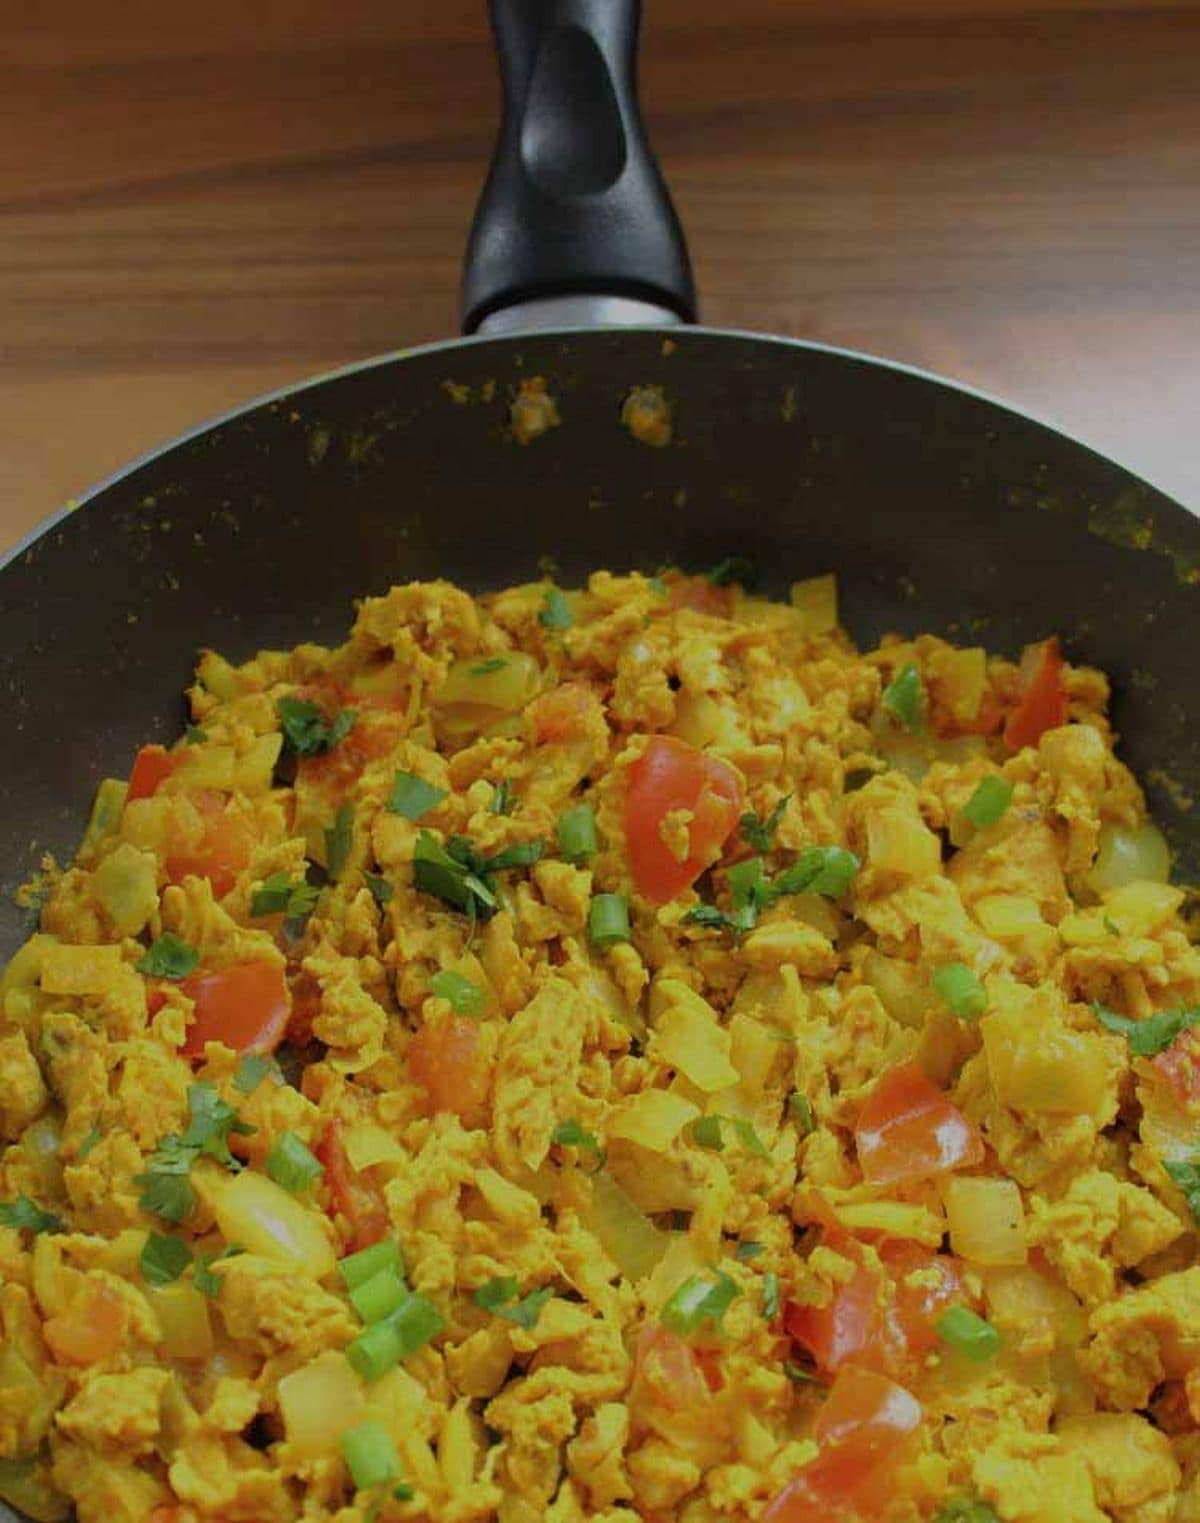 Birds eye view of half a pan of Indian scrambled eggs garnished with coriander.